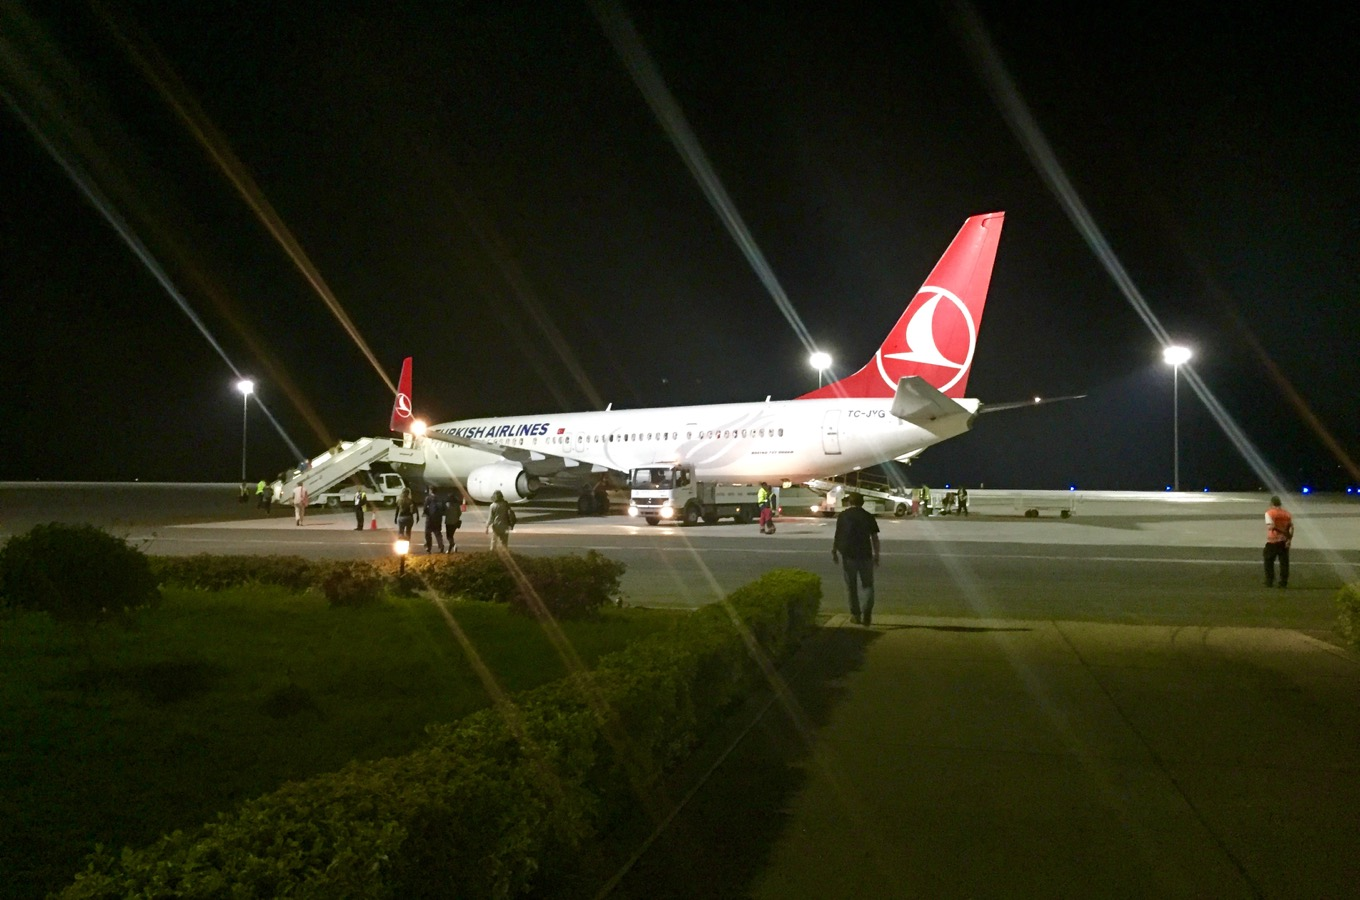 Departure from Kilimanjaro International Airport with Turkish Airlines